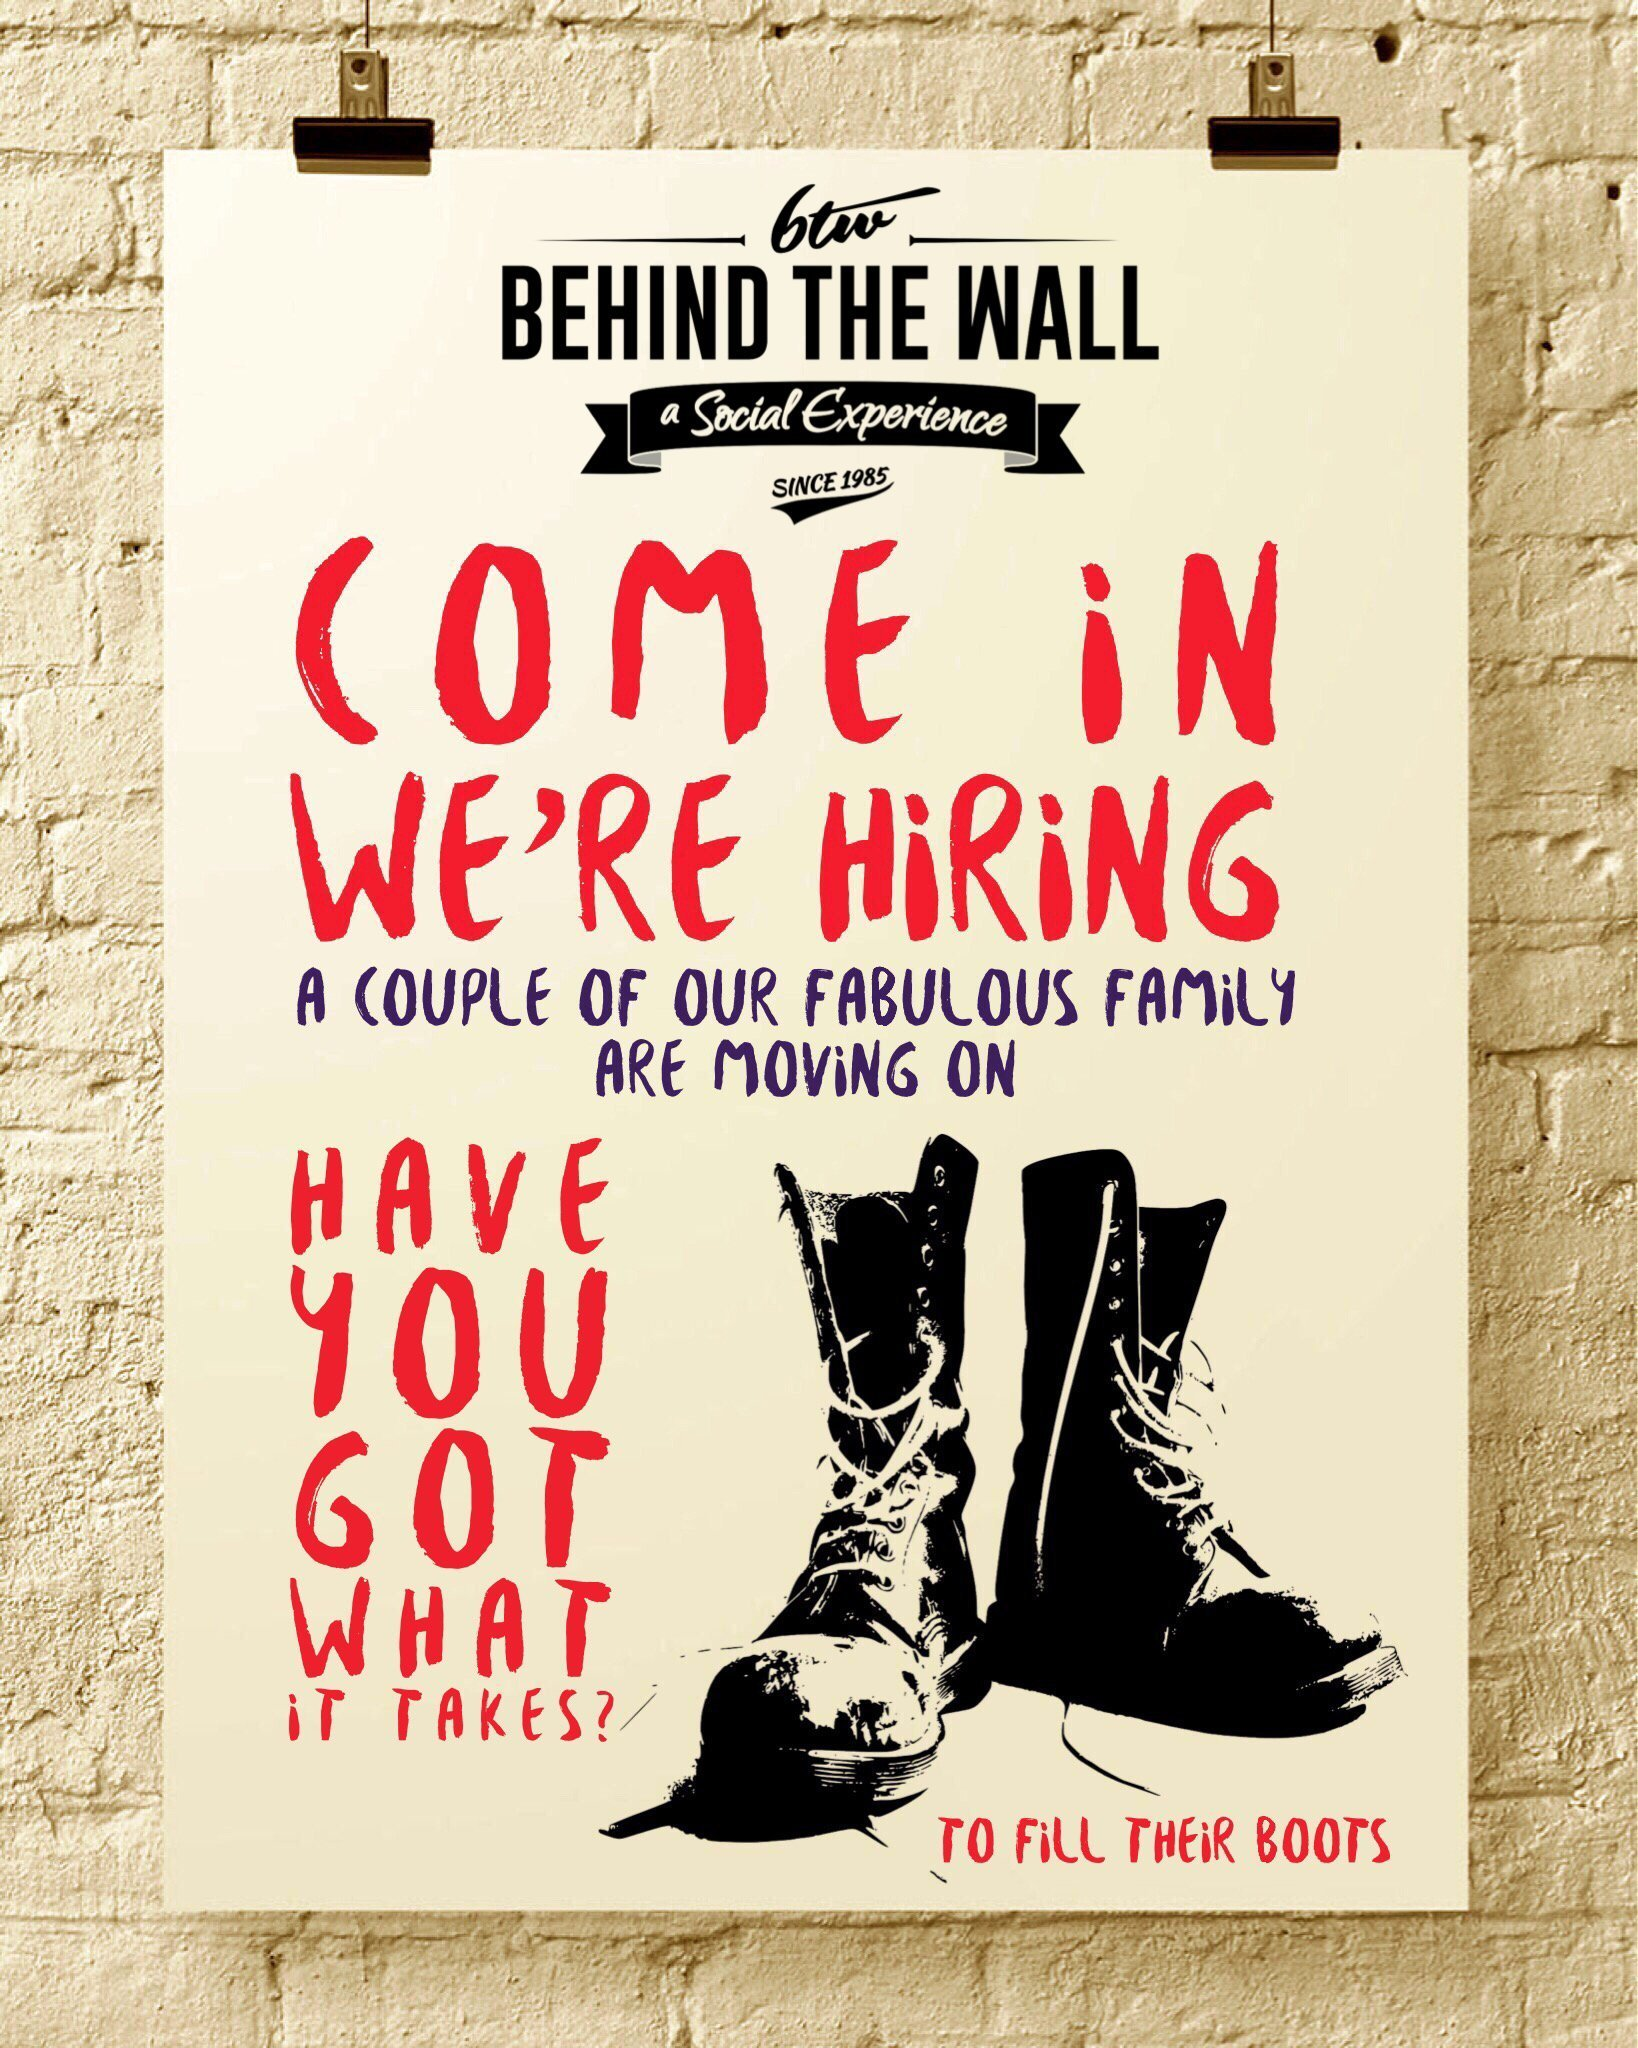 Behind the wall are looking for the best people to serve our customers